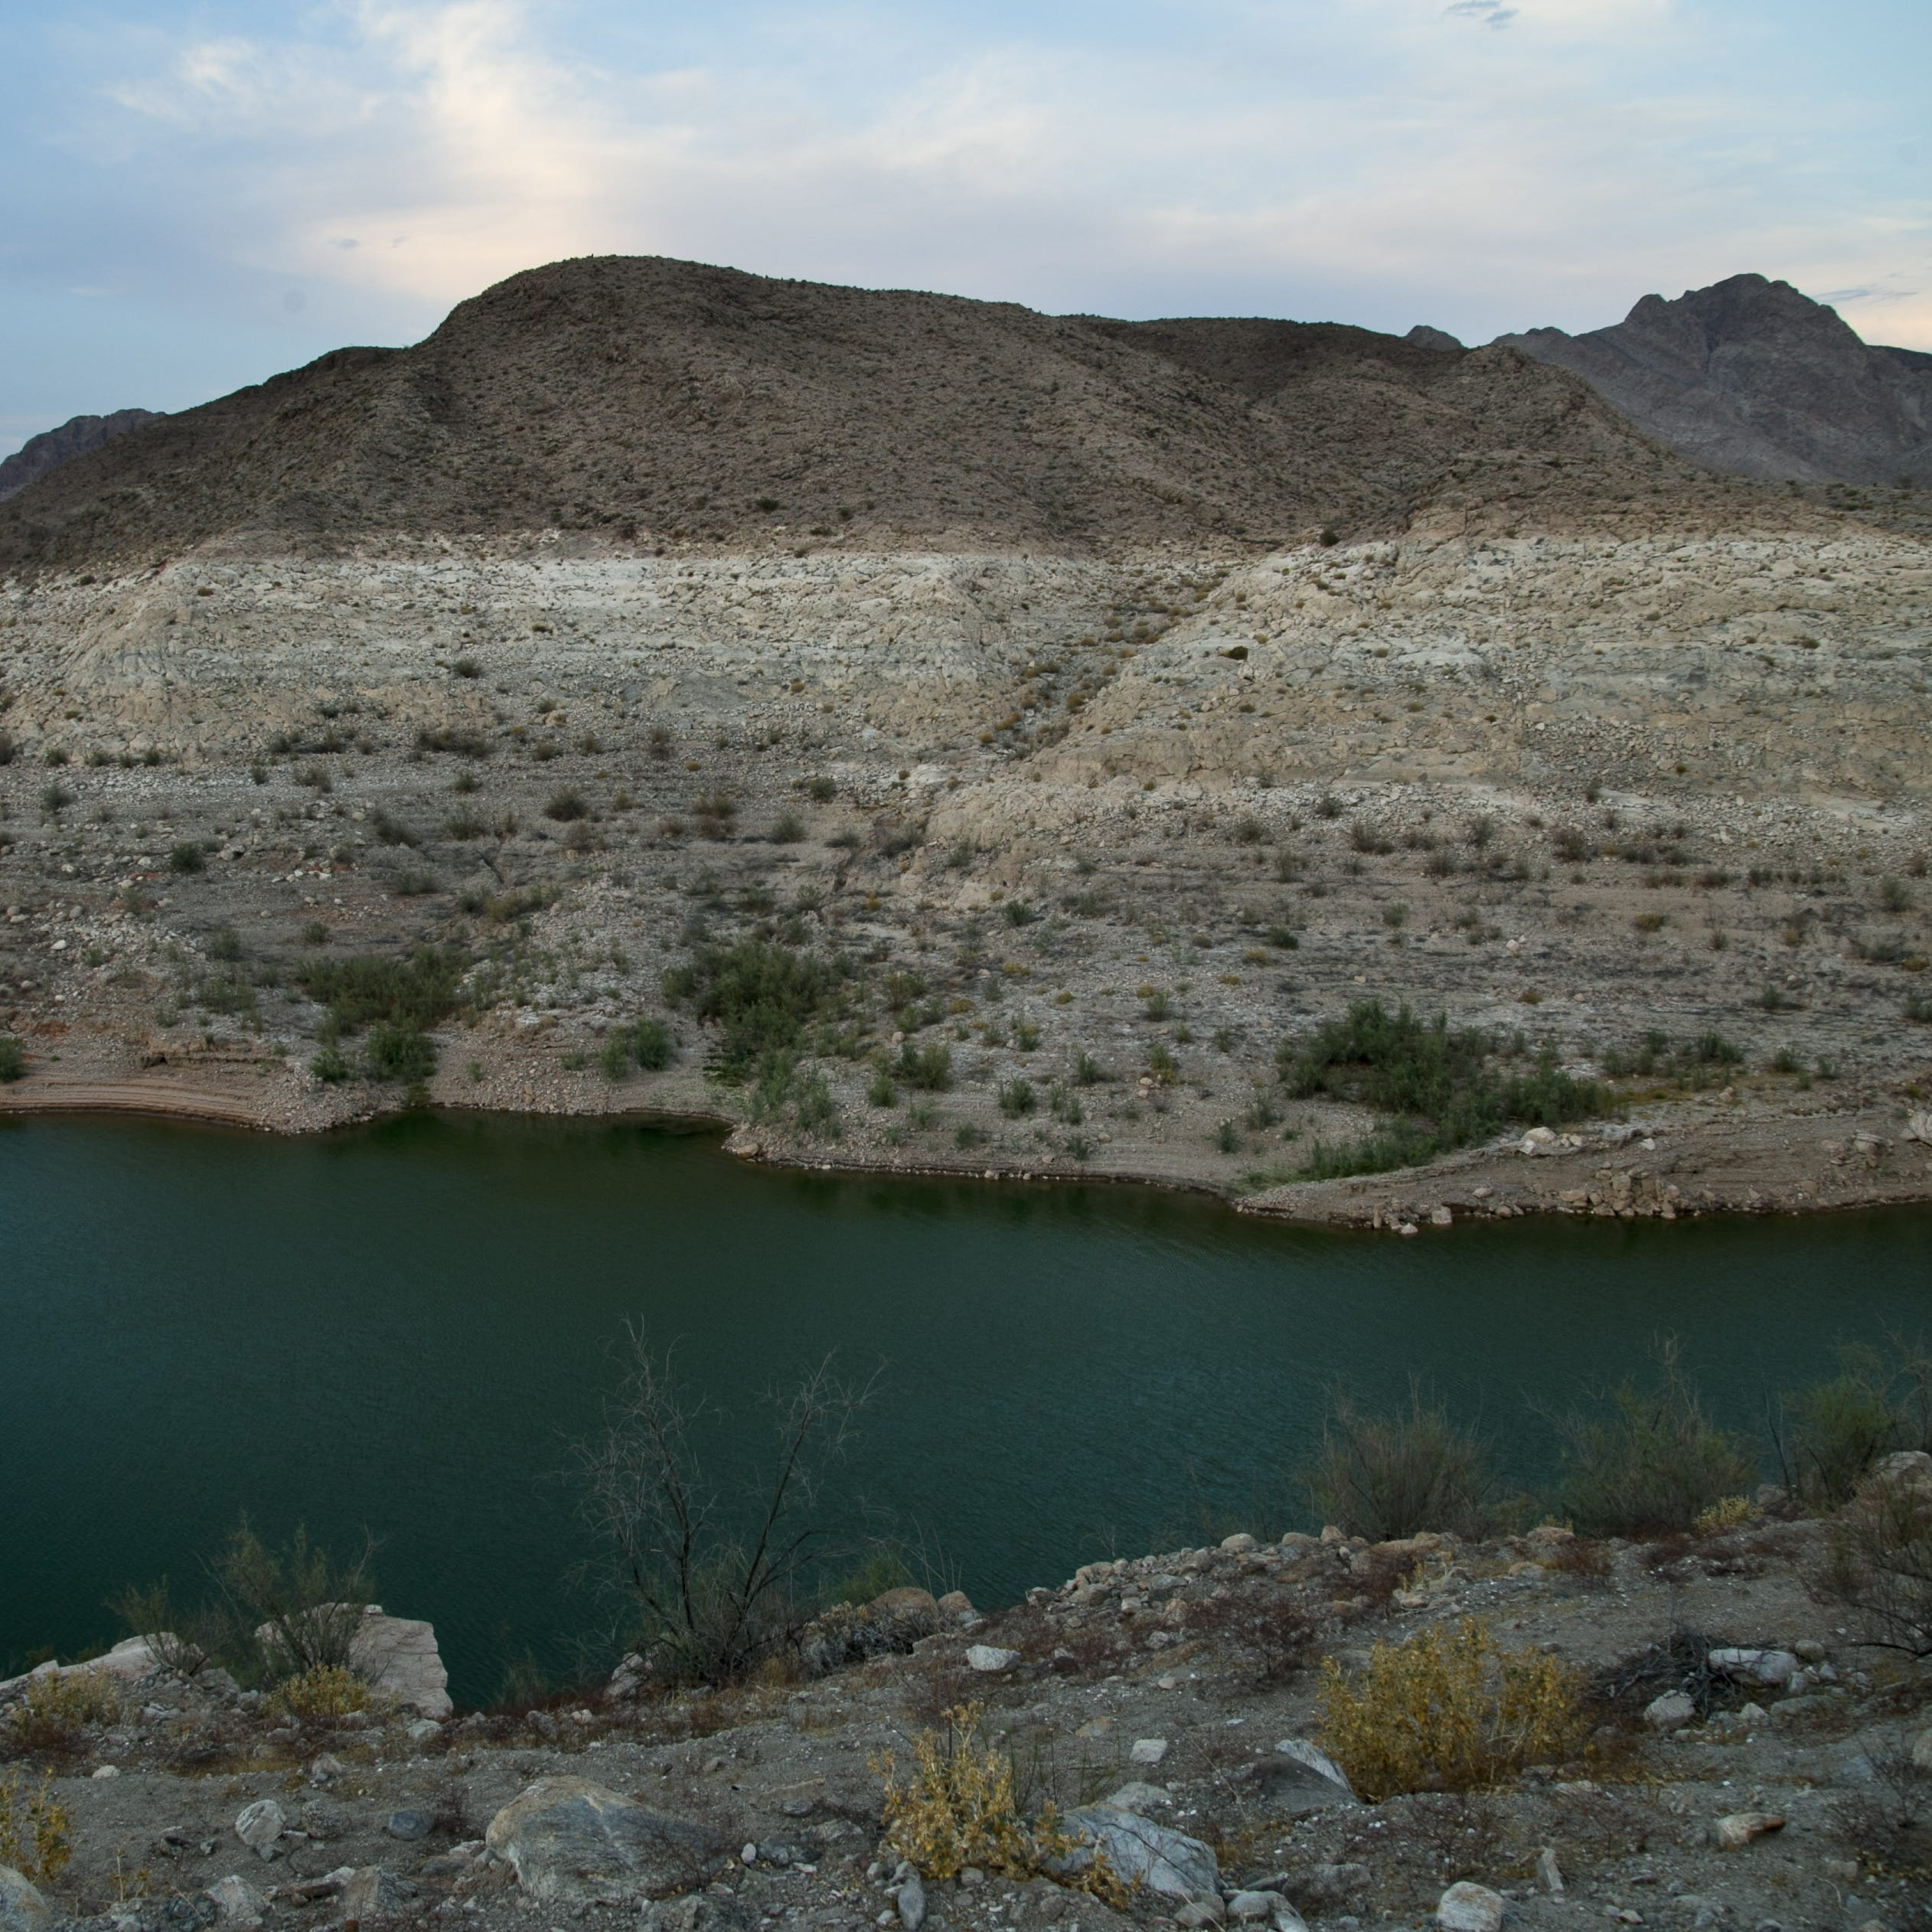 Arizona has no choice but to act on the drought contingency plan